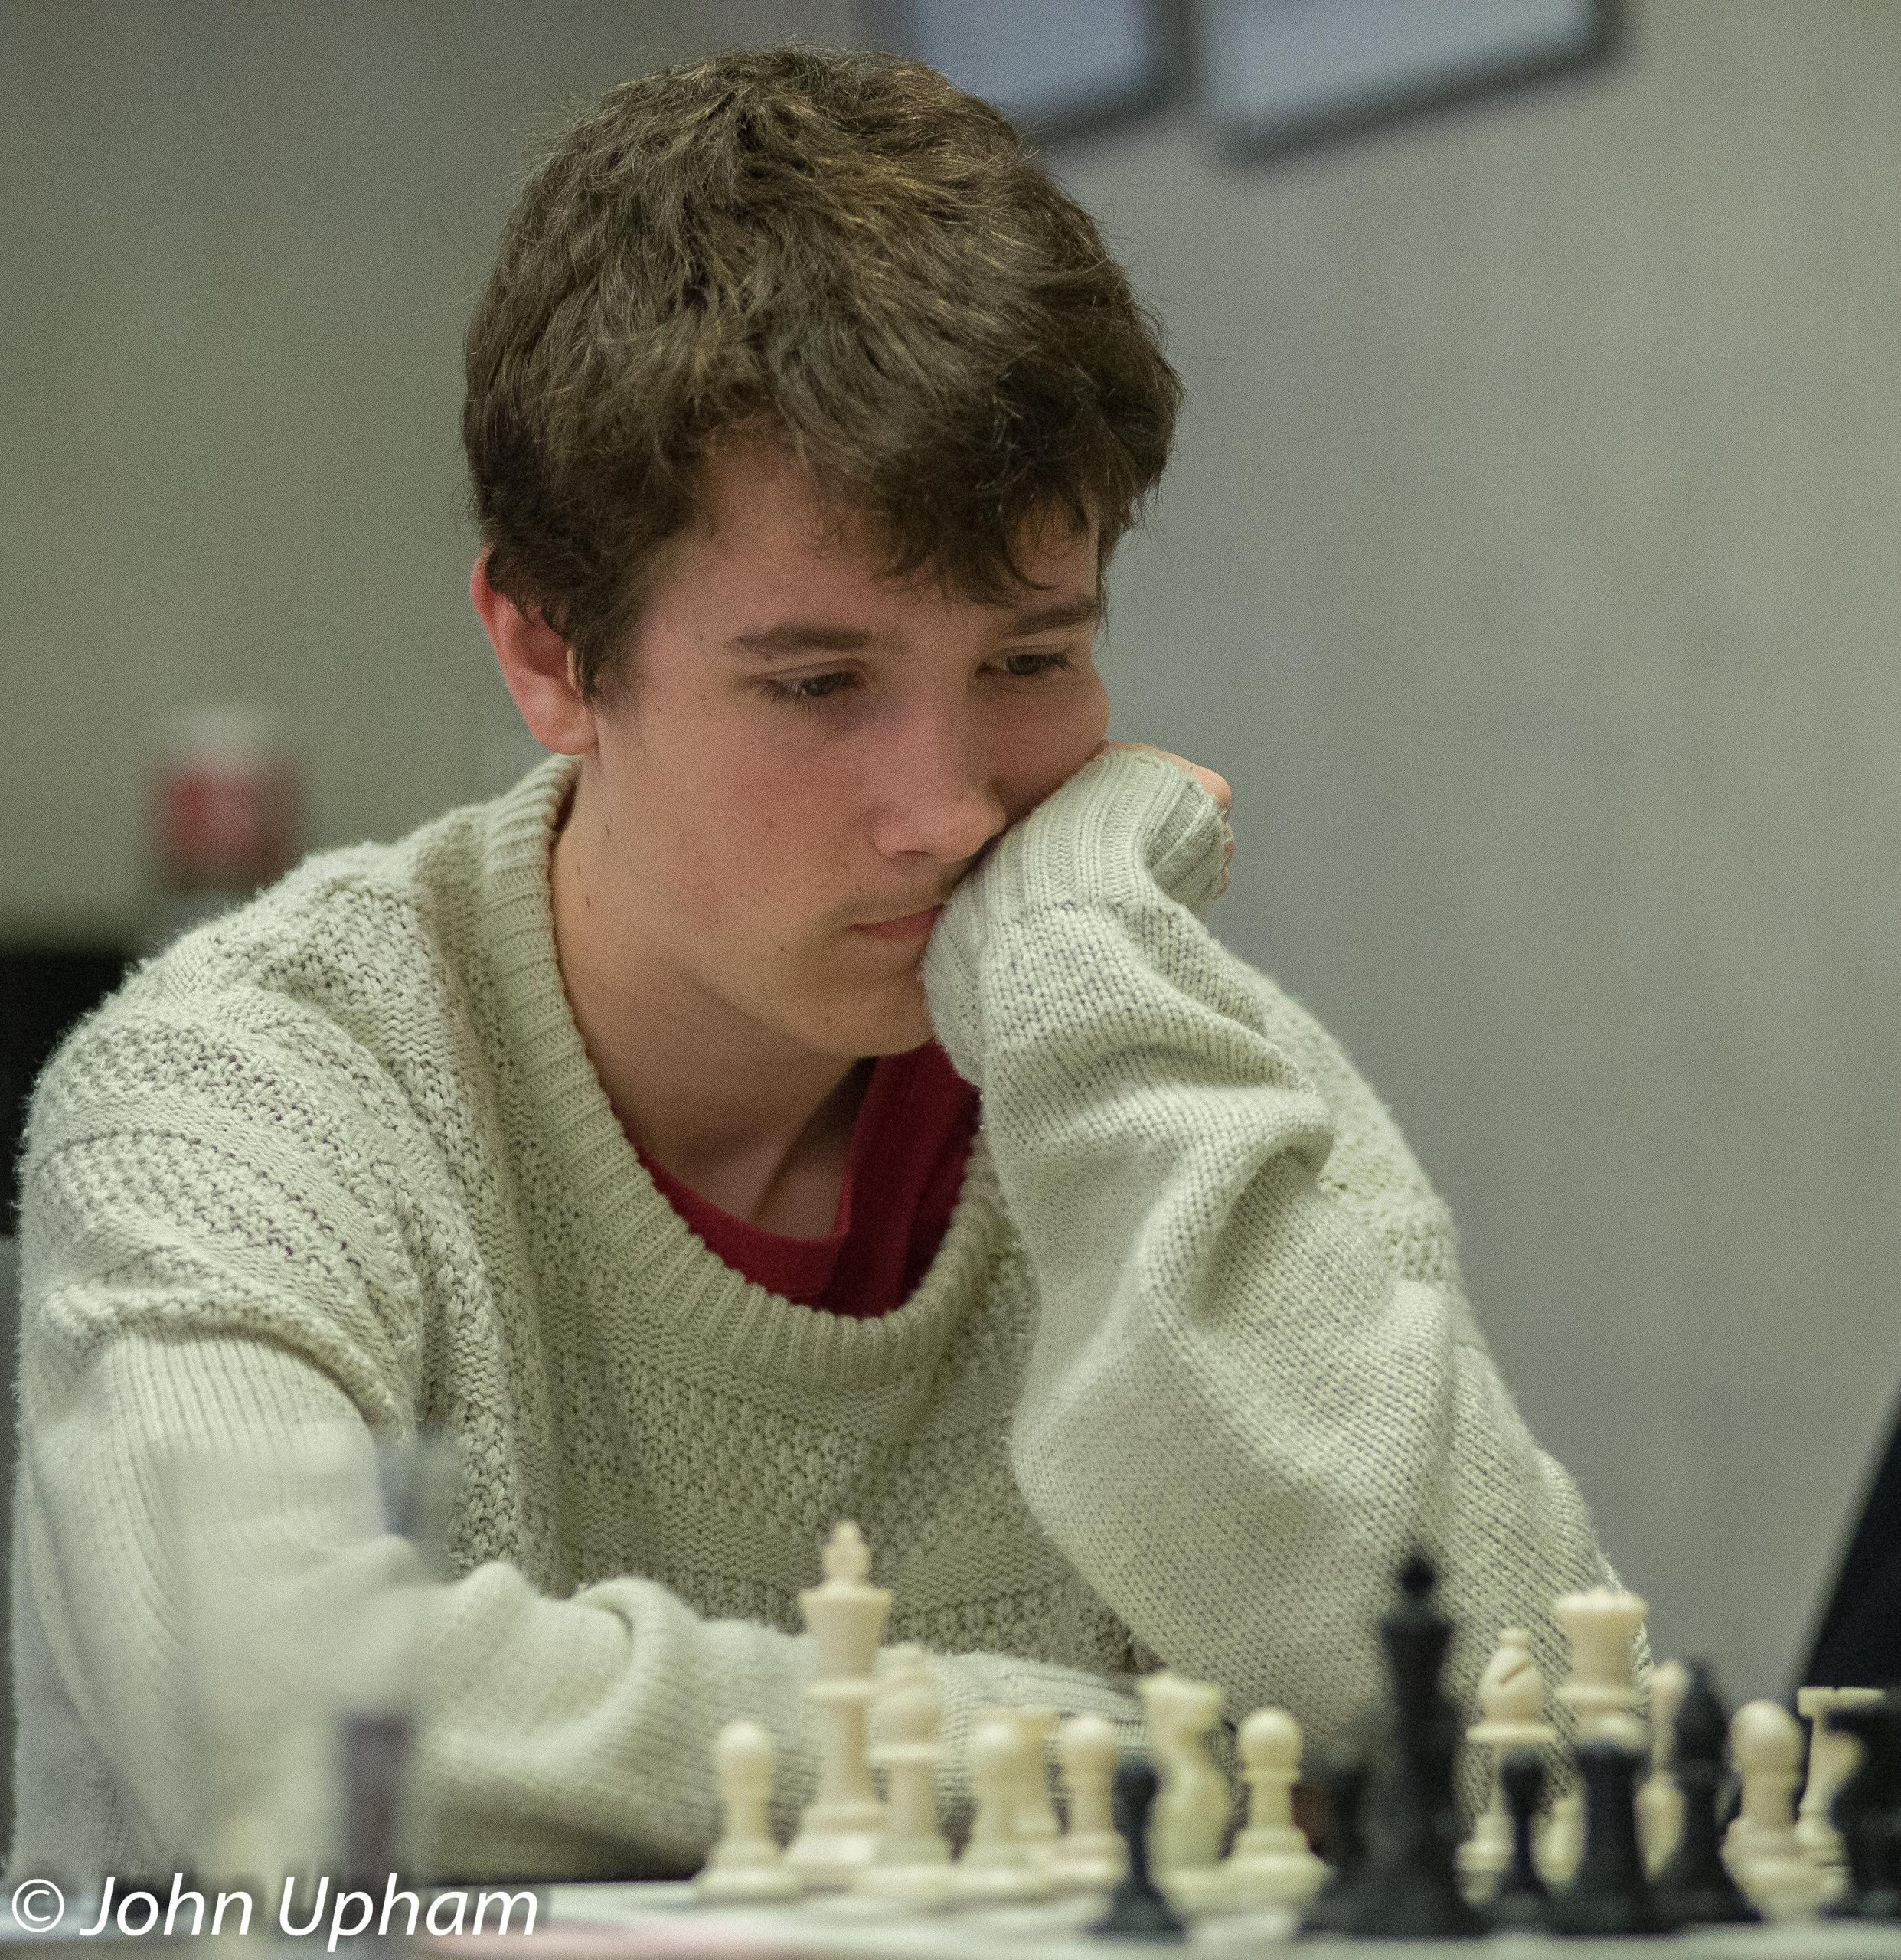 Peter Batchelor, 4NCL Final weekend, 2014, Courtesy of John Upham Photography